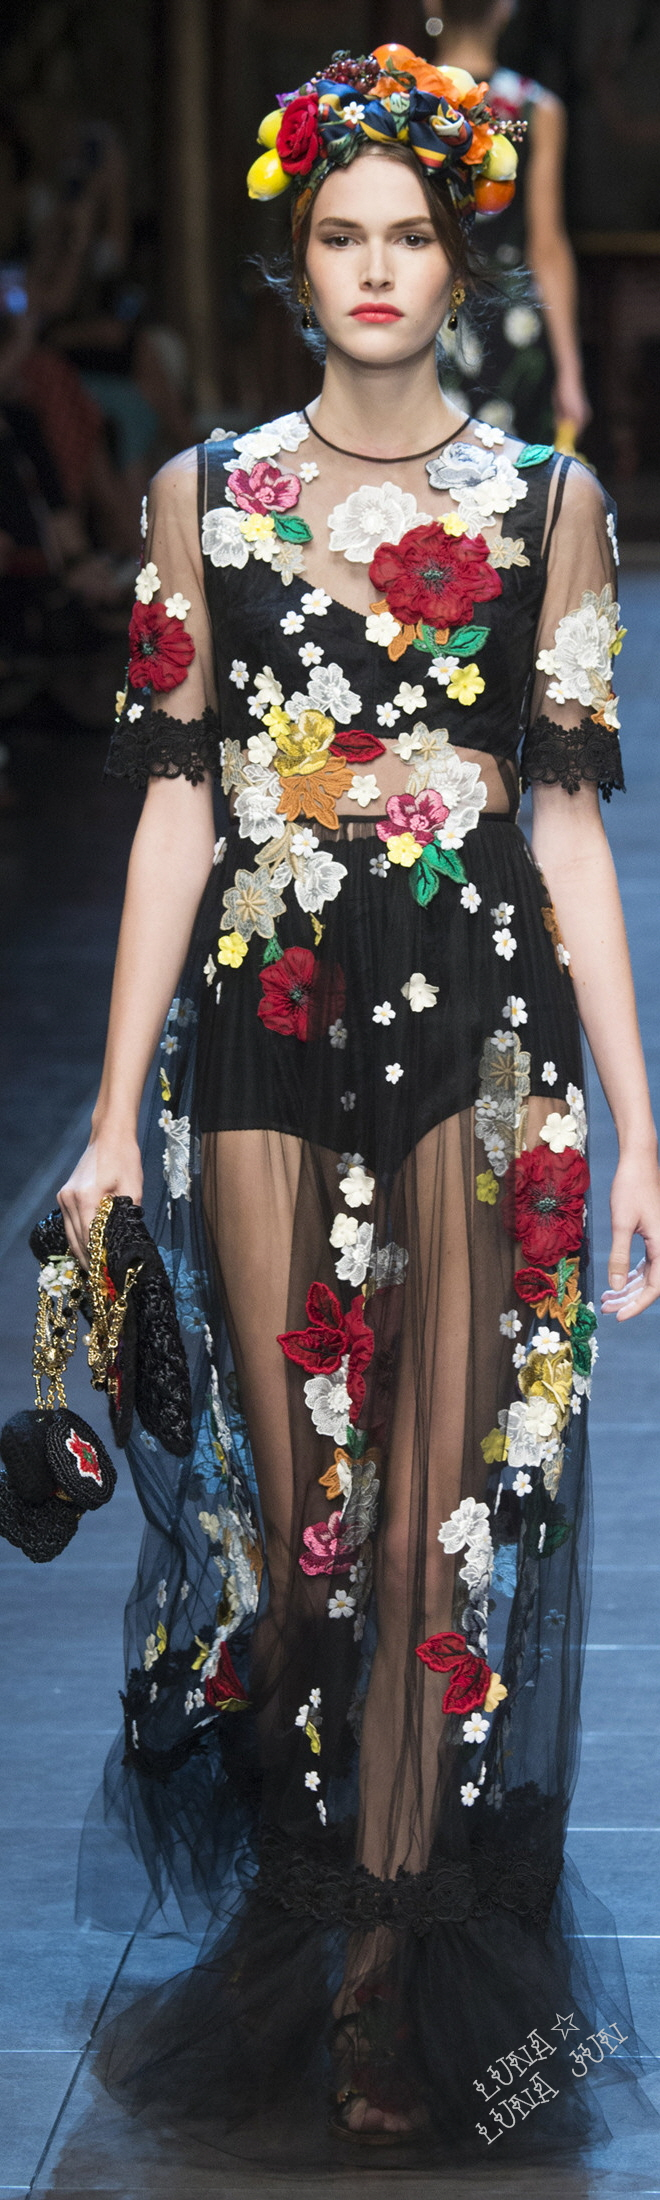 Dolce   Gabbana Spring 2016   D G in 2018   Pinterest   Fashion ... 64cf7c12224f